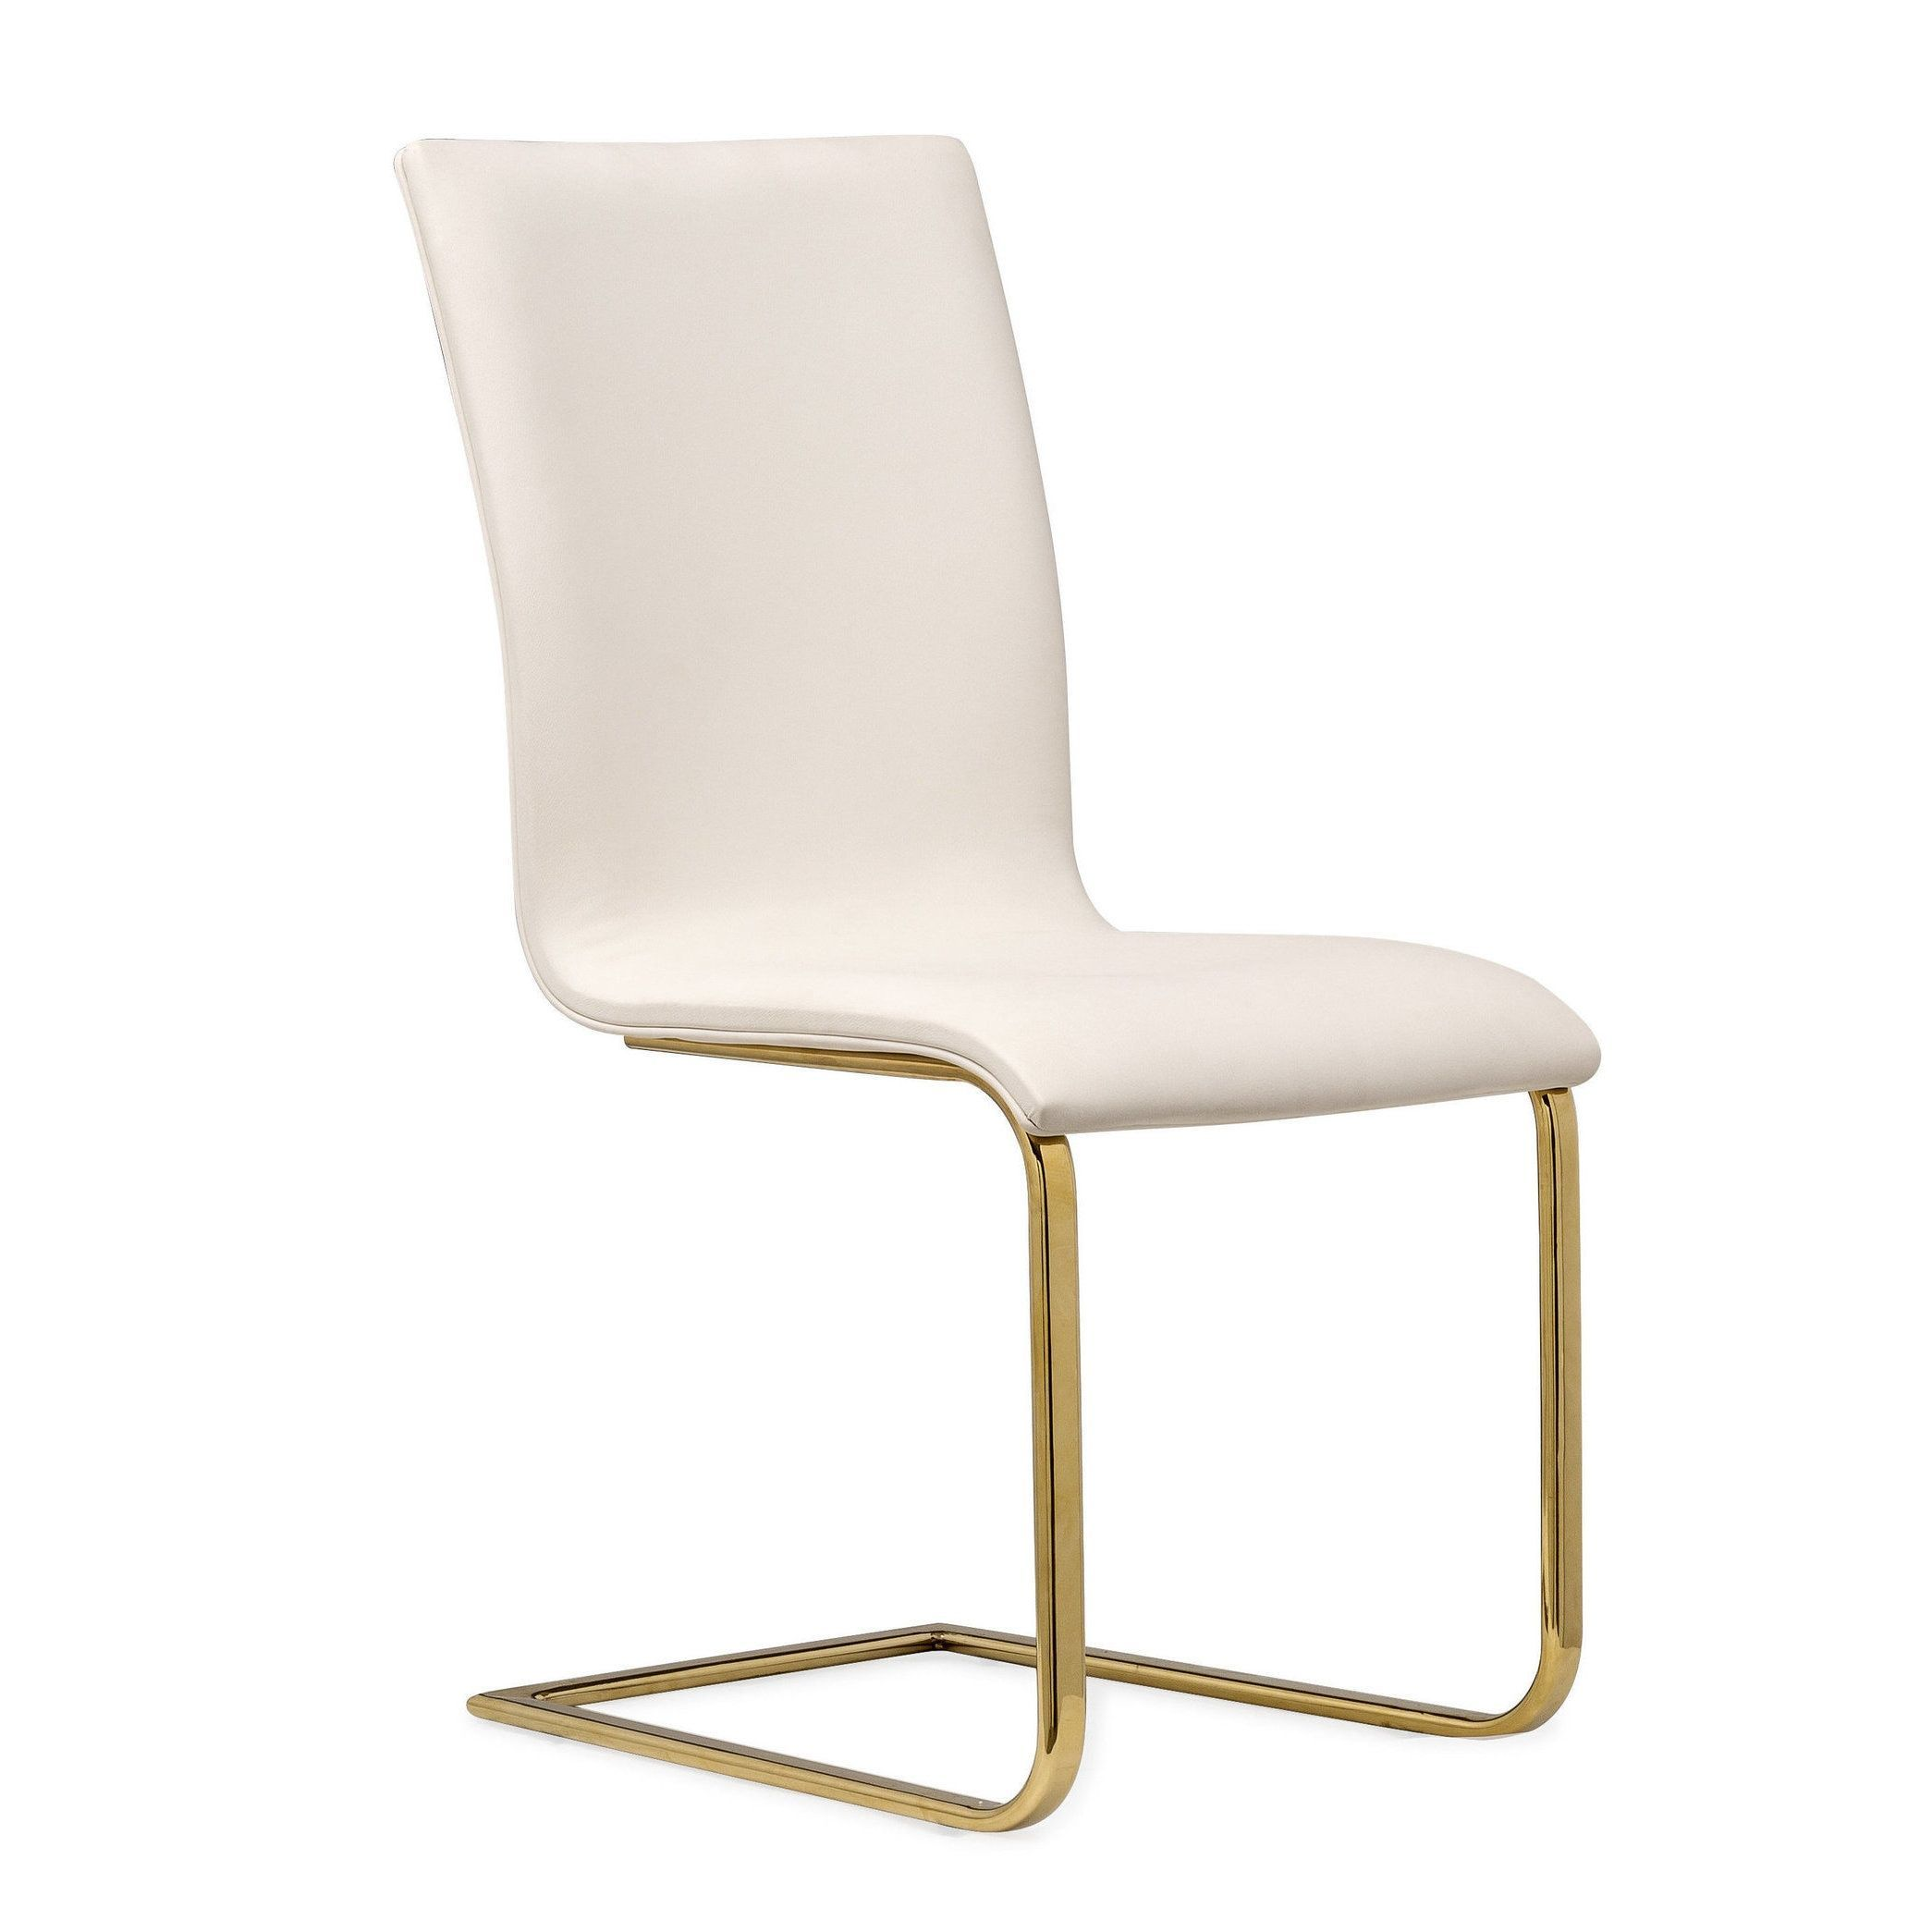 TOV Furniture Maxim White Faux Leather/Steel/Wool Dining Chair (Maxim White